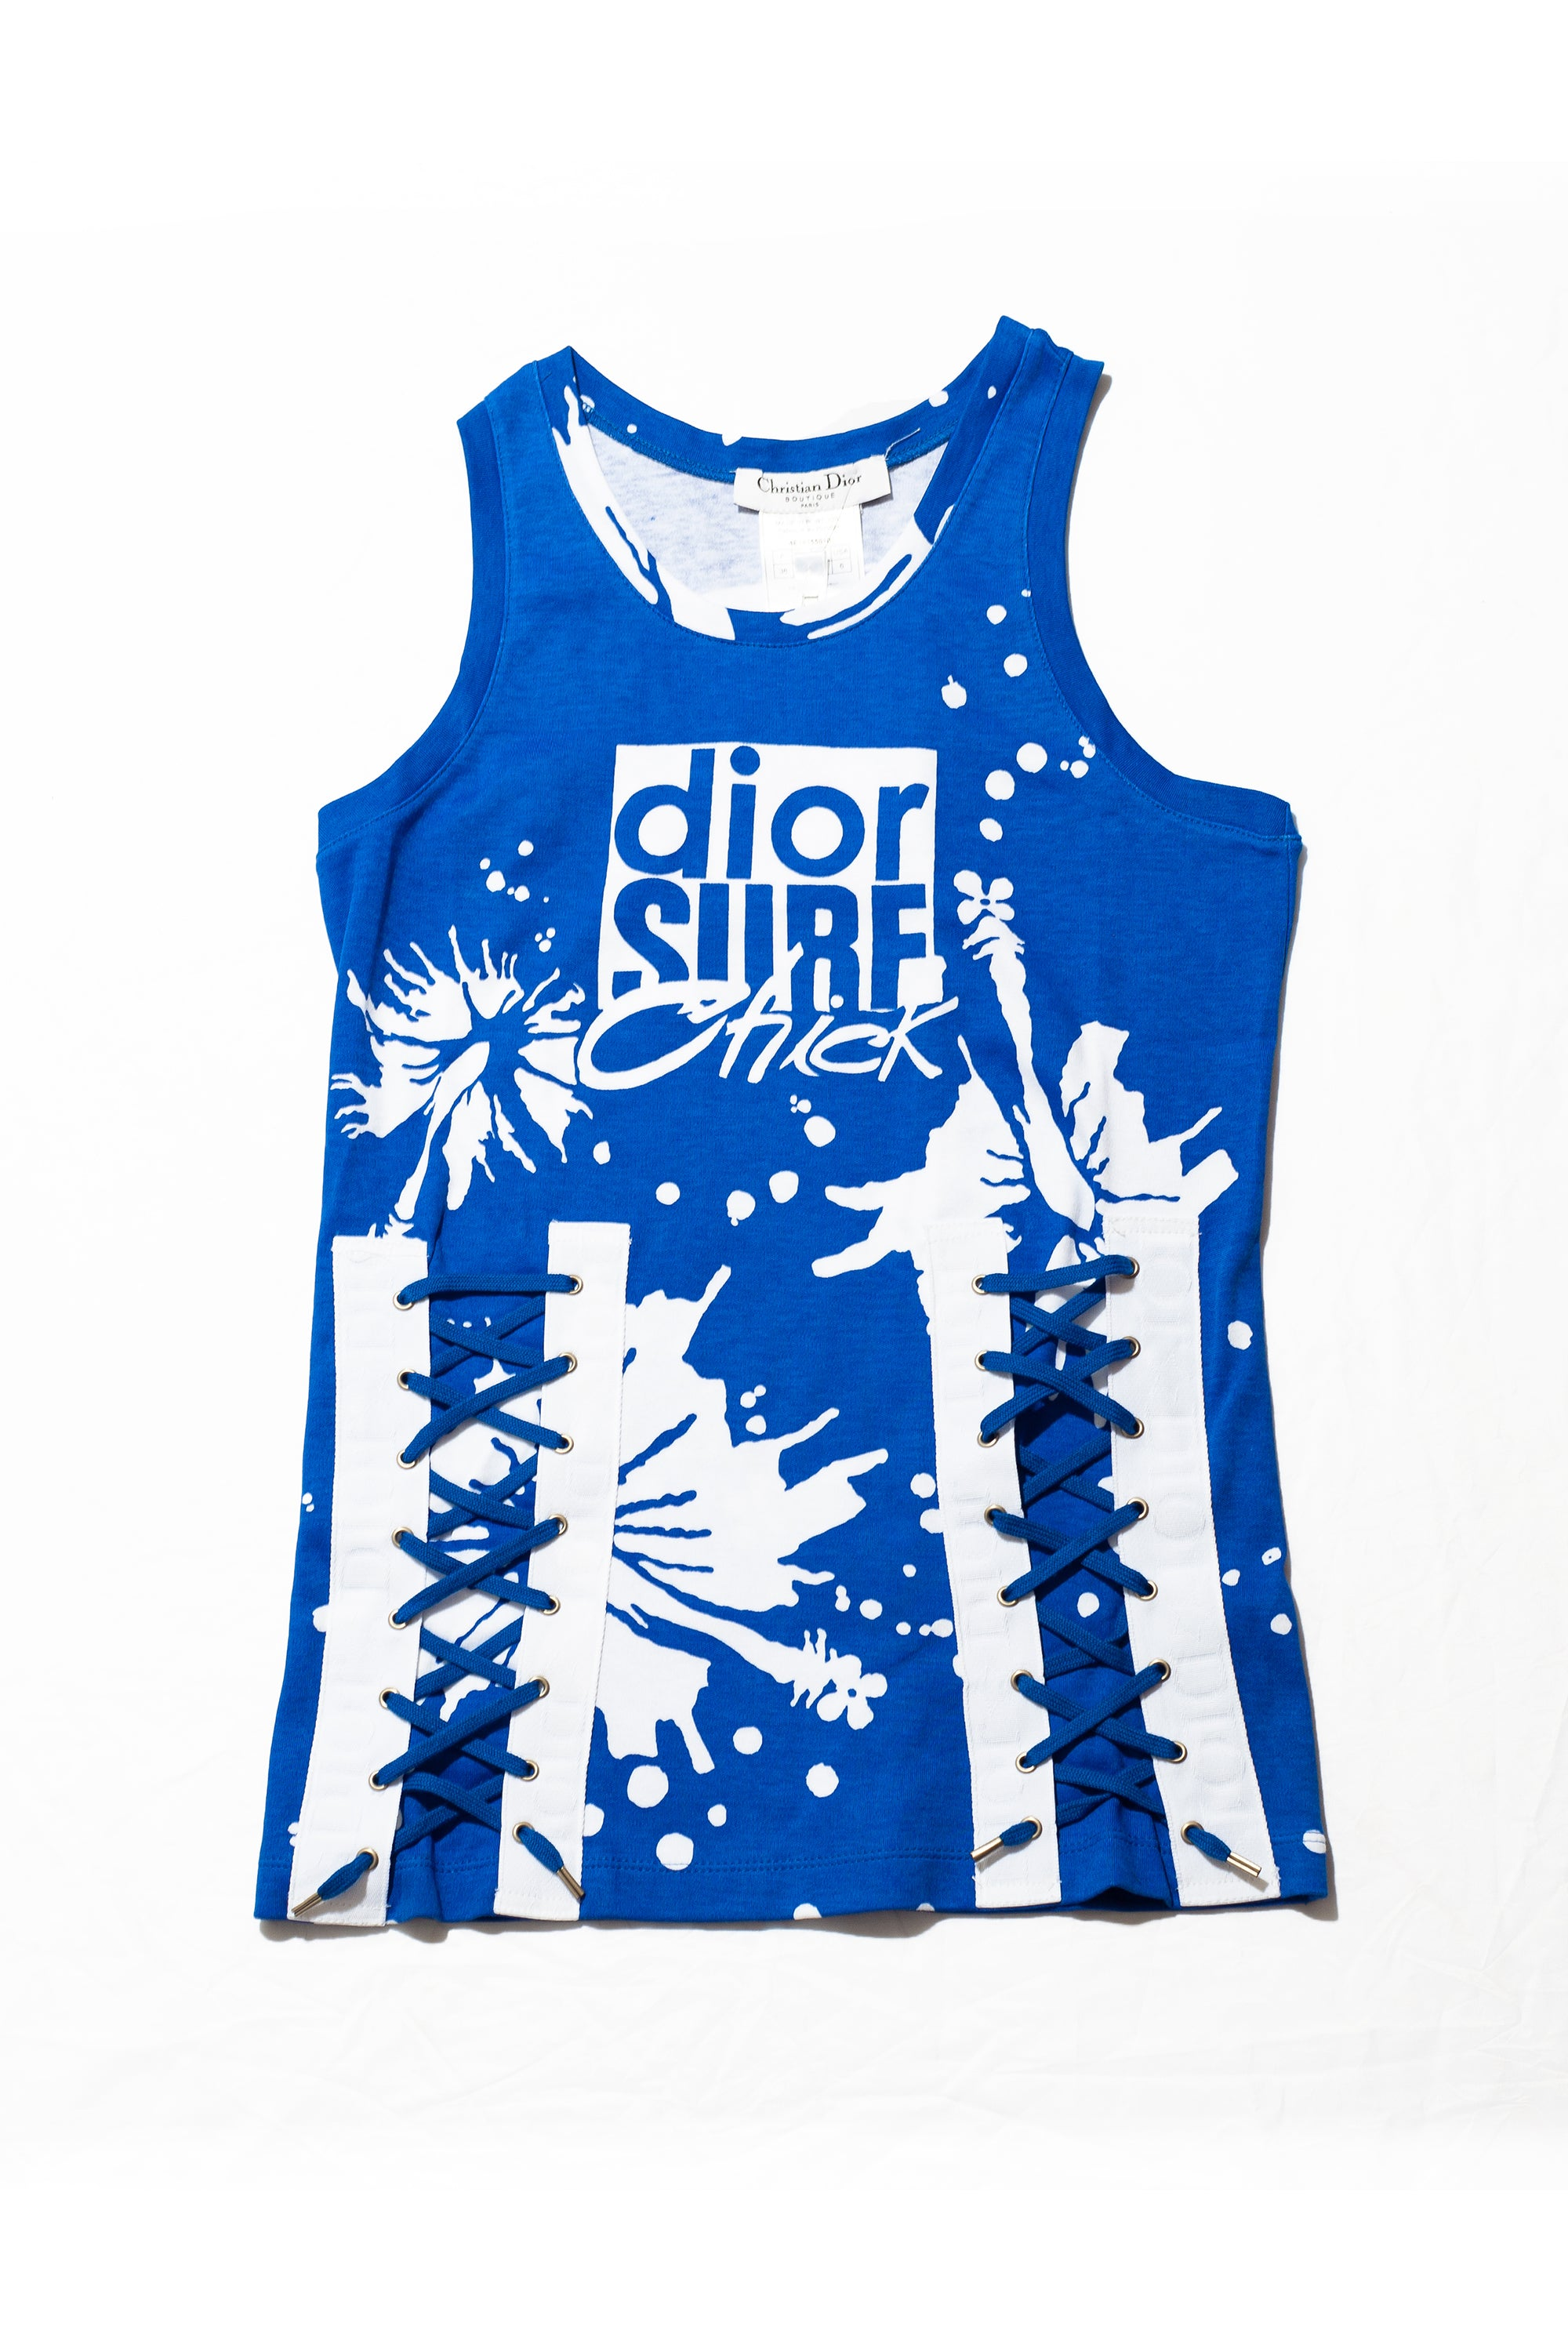 Christian Dior <br> 2004 Surf Chick collection tank top with side lacing